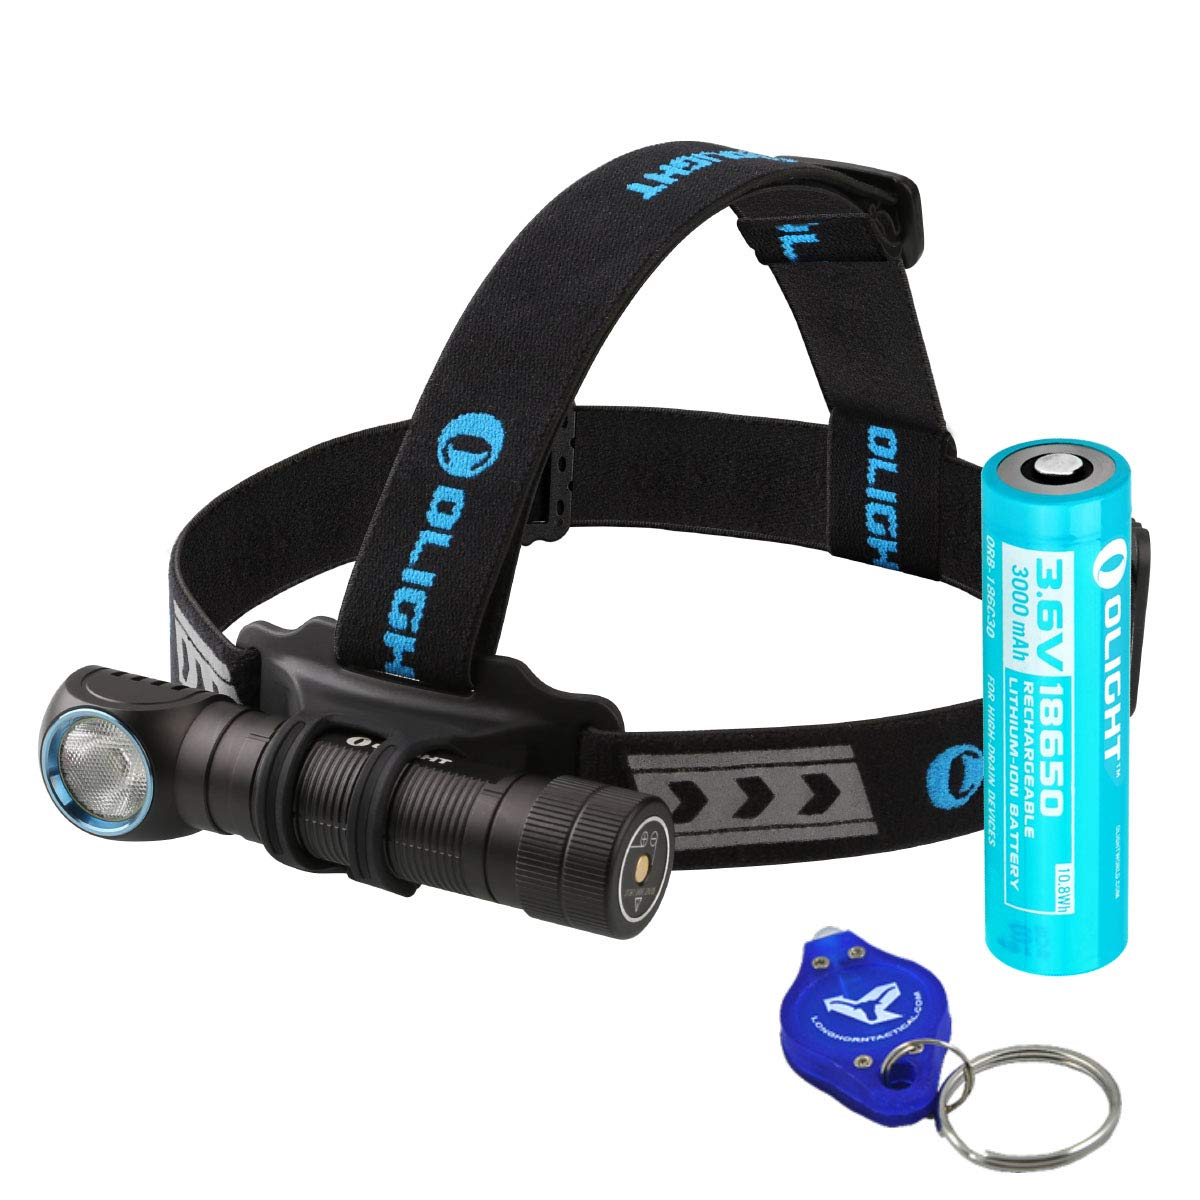 OLIGHT H2R LED Rechargeable Headlamp – Available in 2300 Lumens Cool White or 2000 Lumens Neutral White LED Plus Lumen Tactical LED Keychain Flashlight